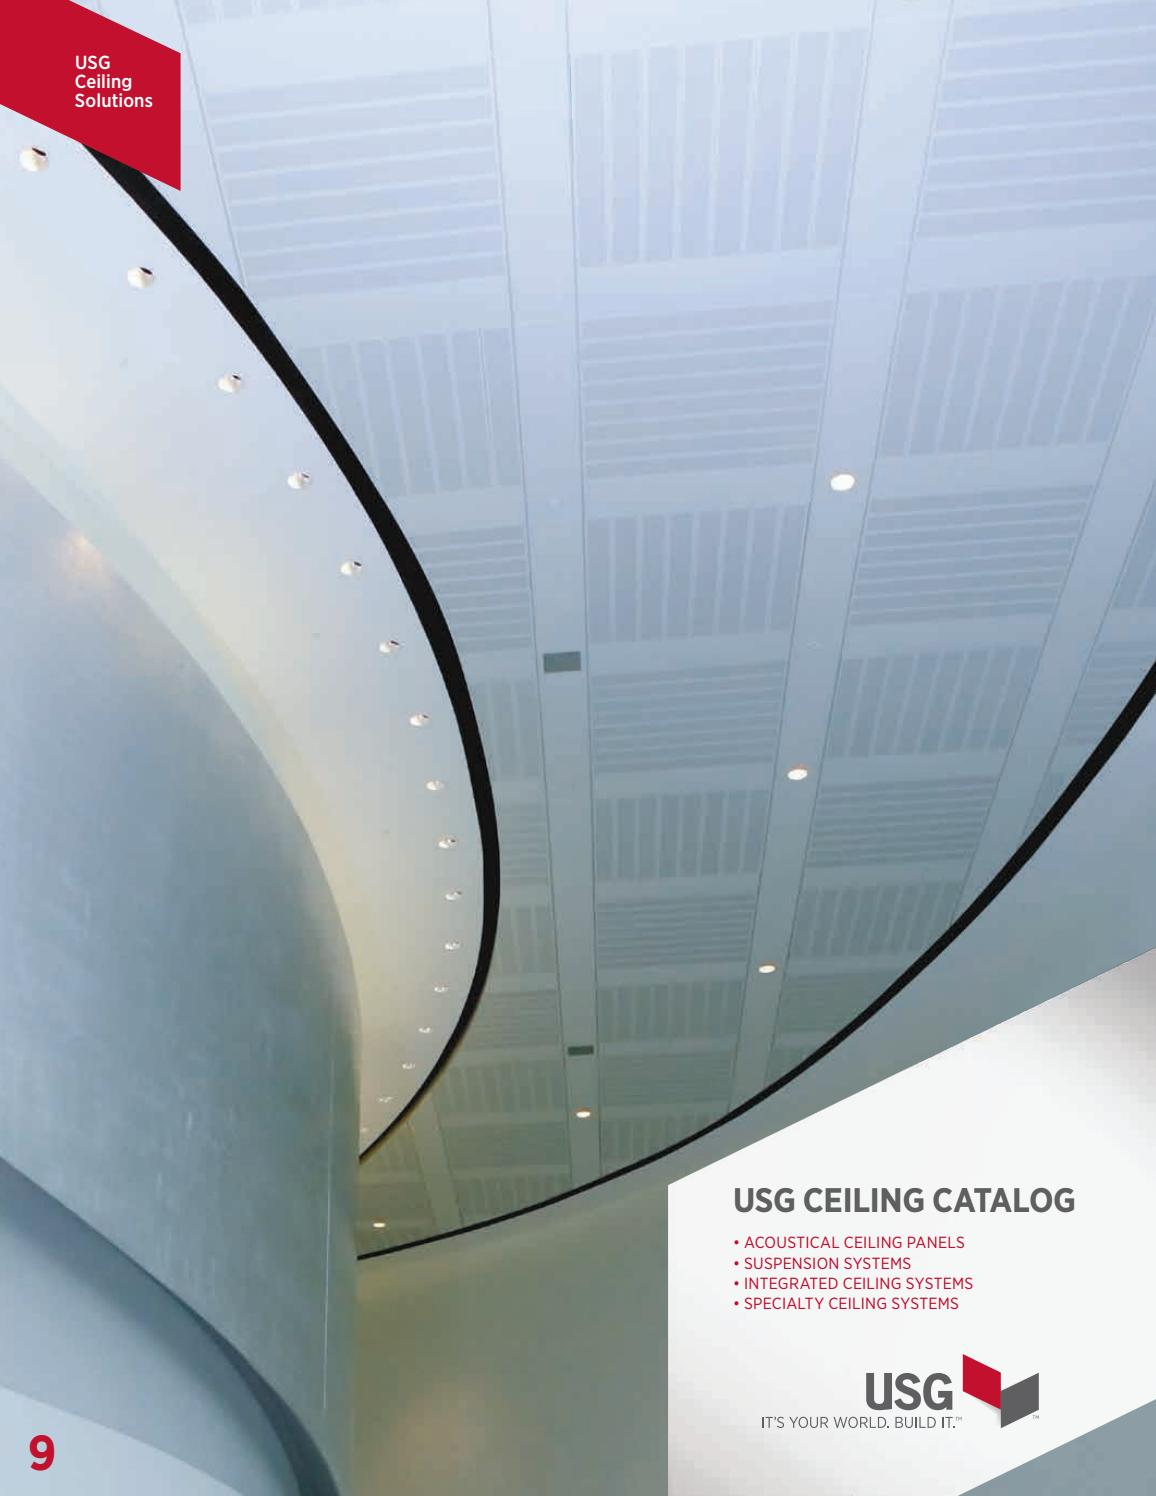 Usg Ceilings Systems Catalog En Sc2000 By Sky0 5 Issuu